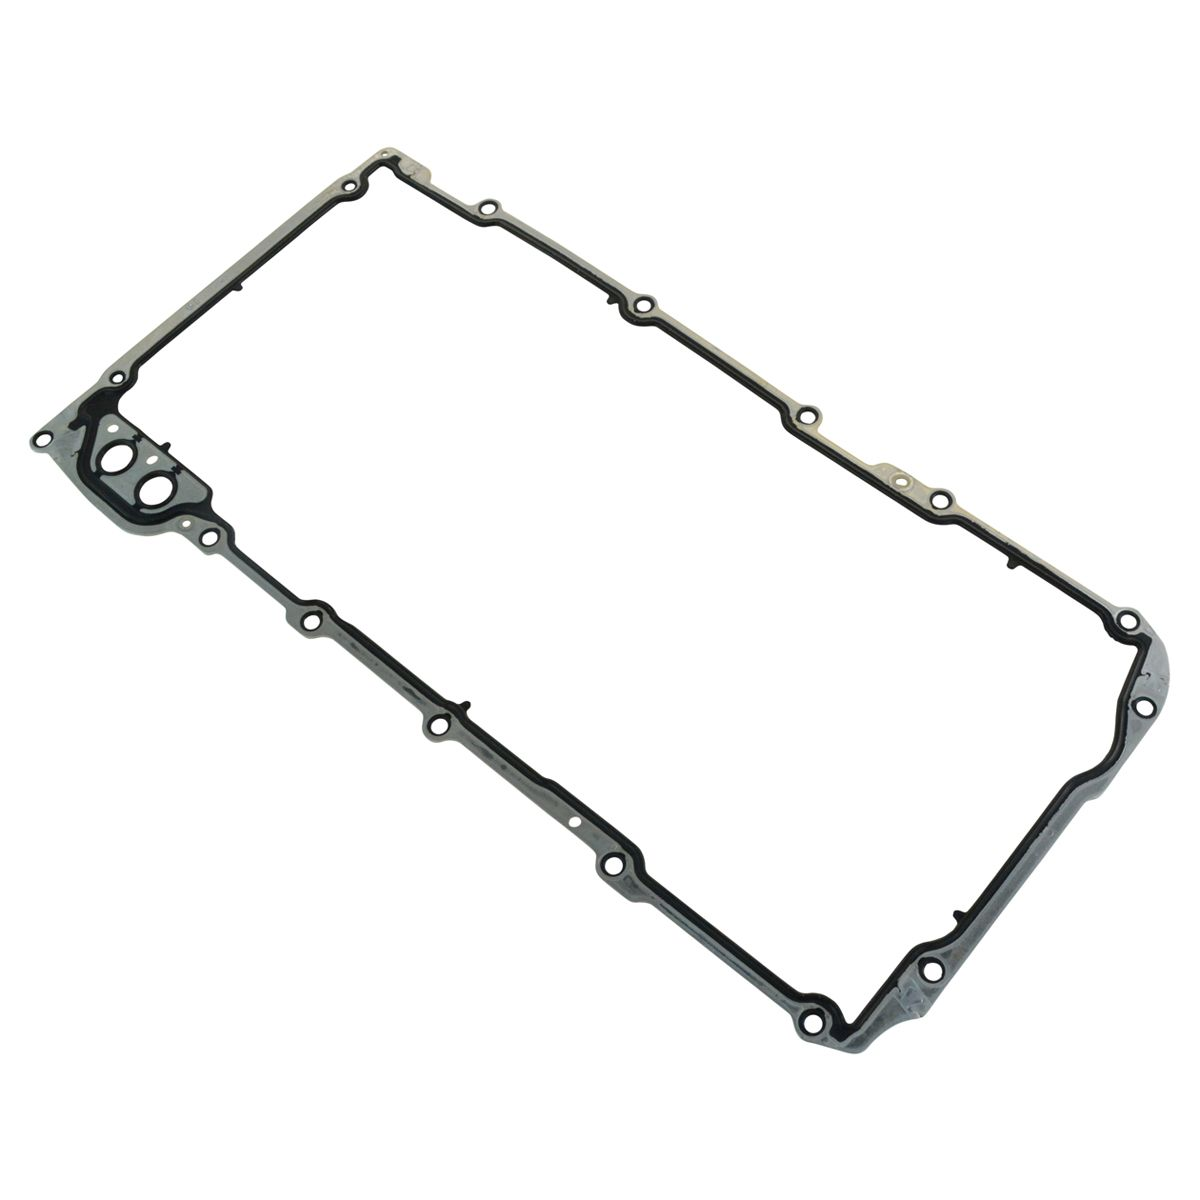 Oem Engine Oil Pan Gasket For Chevy Gmc Cadillac